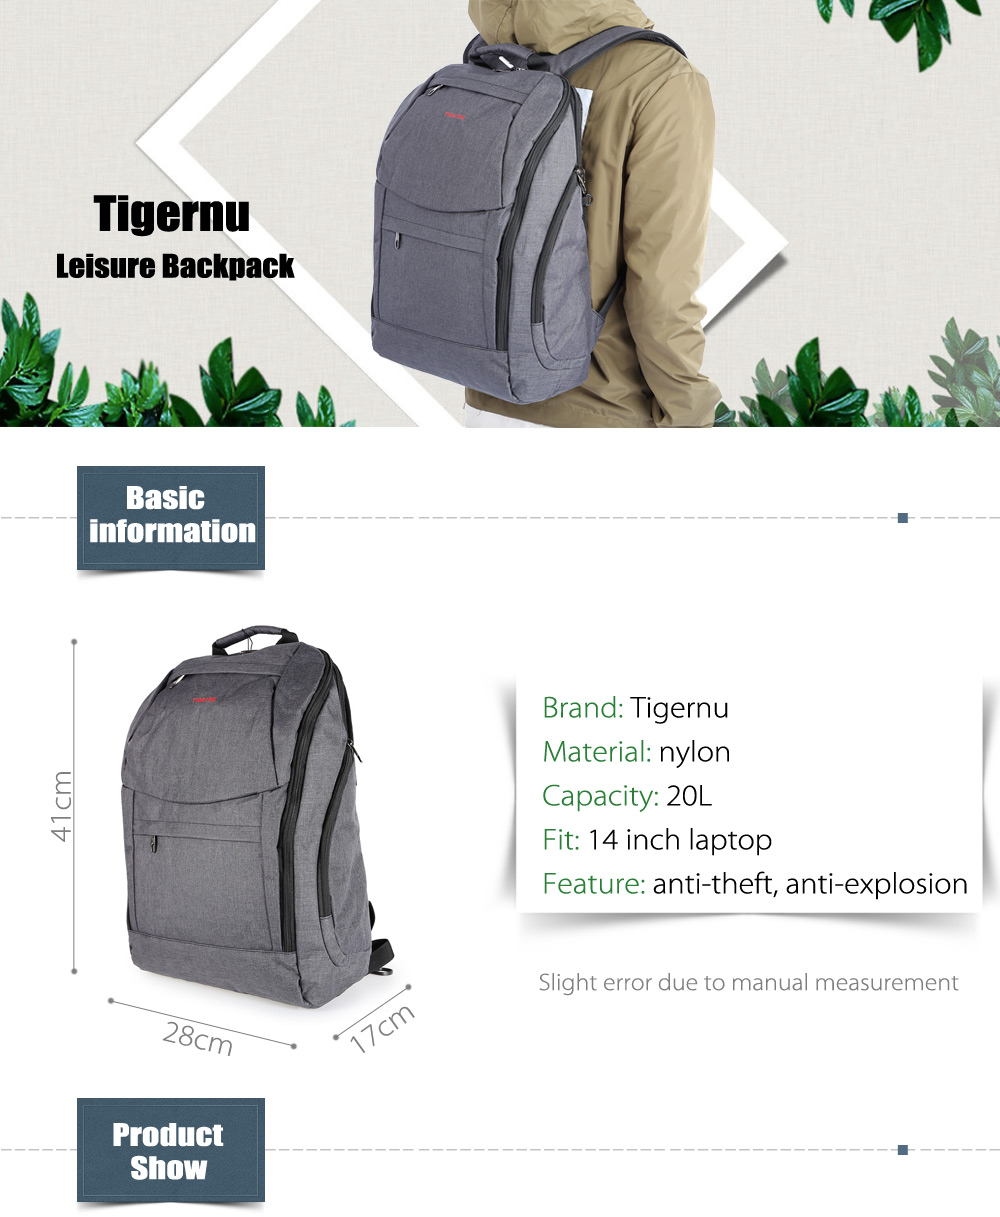 Tigernu T - B3169 Water-resistant Nylon 20L Leisure Backpack Bag for 14 inch Laptop